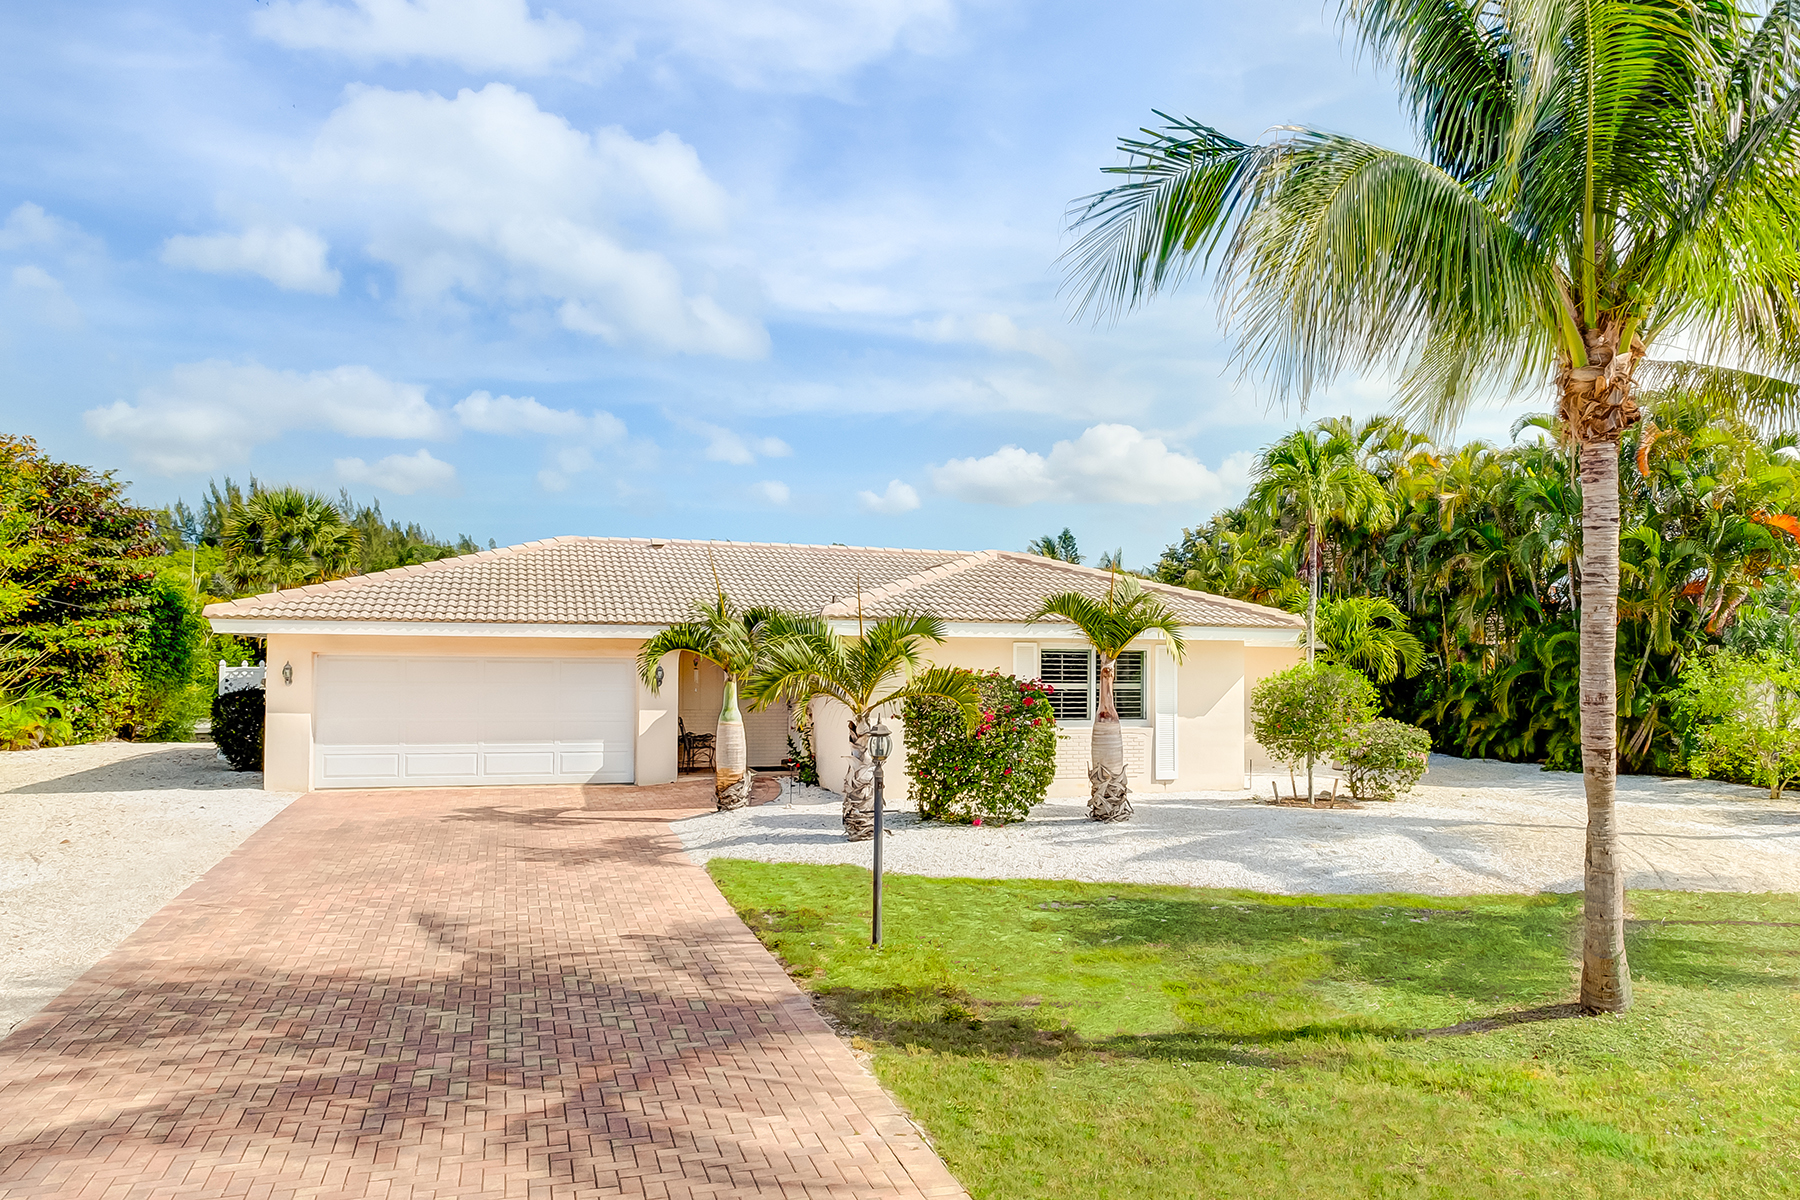 Maison unifamiliale pour l Vente à SANIBEL 830 Angel Wing Dr Sanibel, Florida, 33957 États-Unis